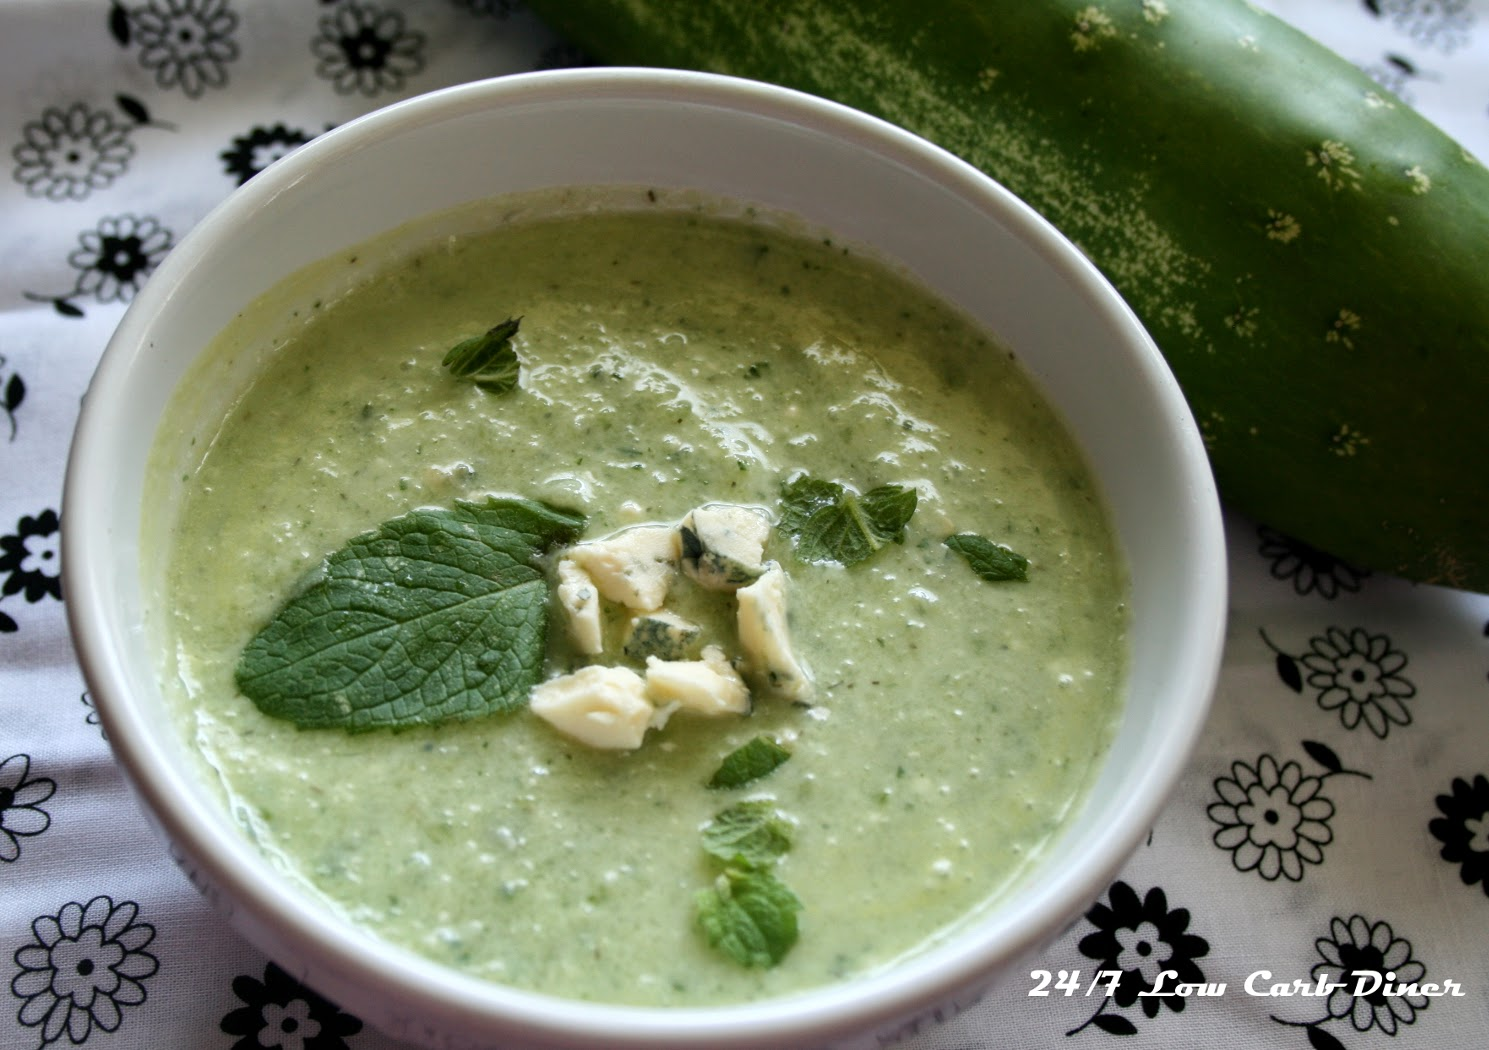 24/7 Low Carb Diner: Chillin' with Some Cold Cucumber Soup